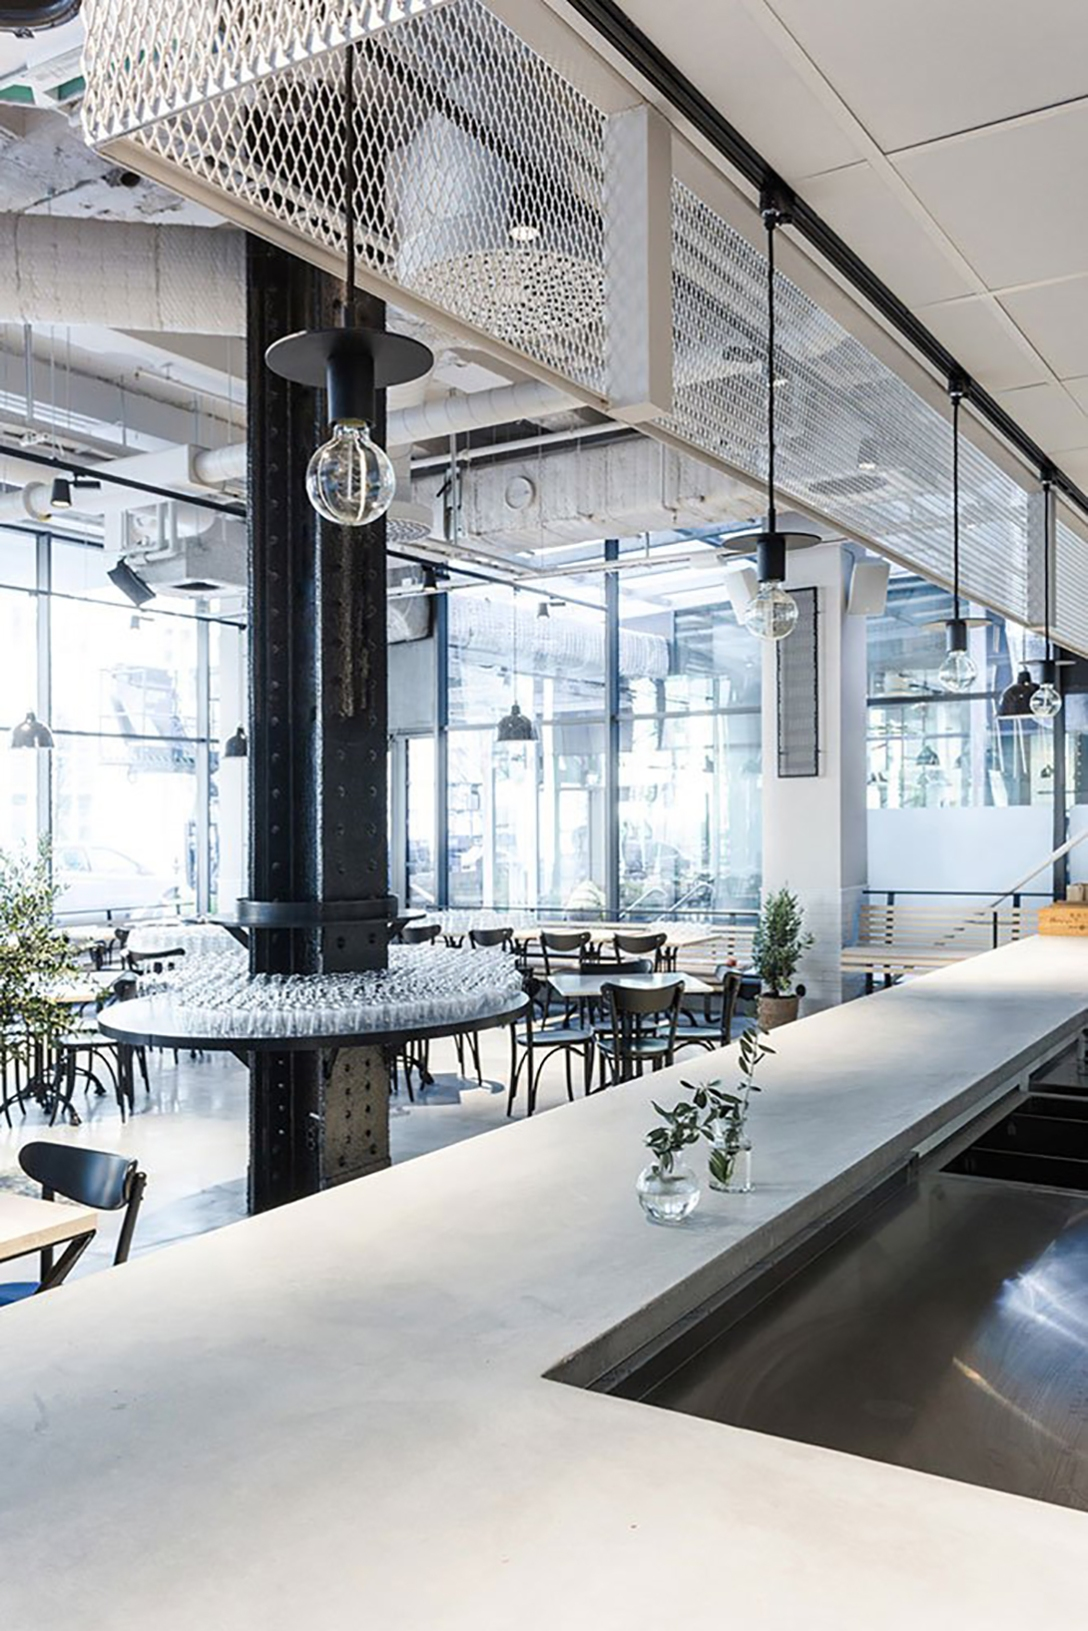 usine-restaurant-in-stockholm-by-richard-lindvall-yellowtrace-091.jpg